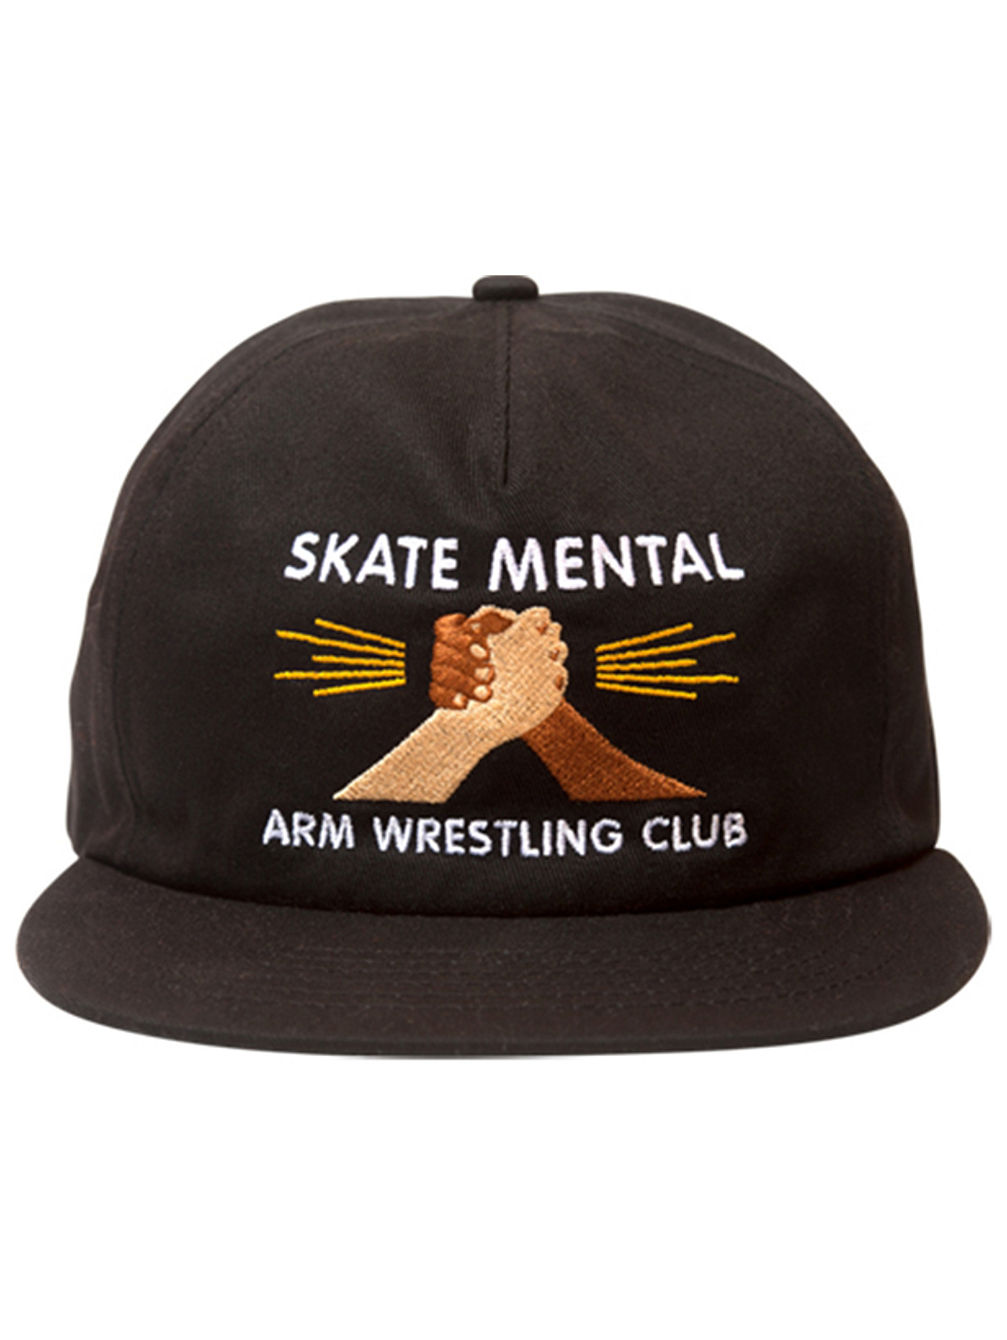 Arm Wrestling Club Cap